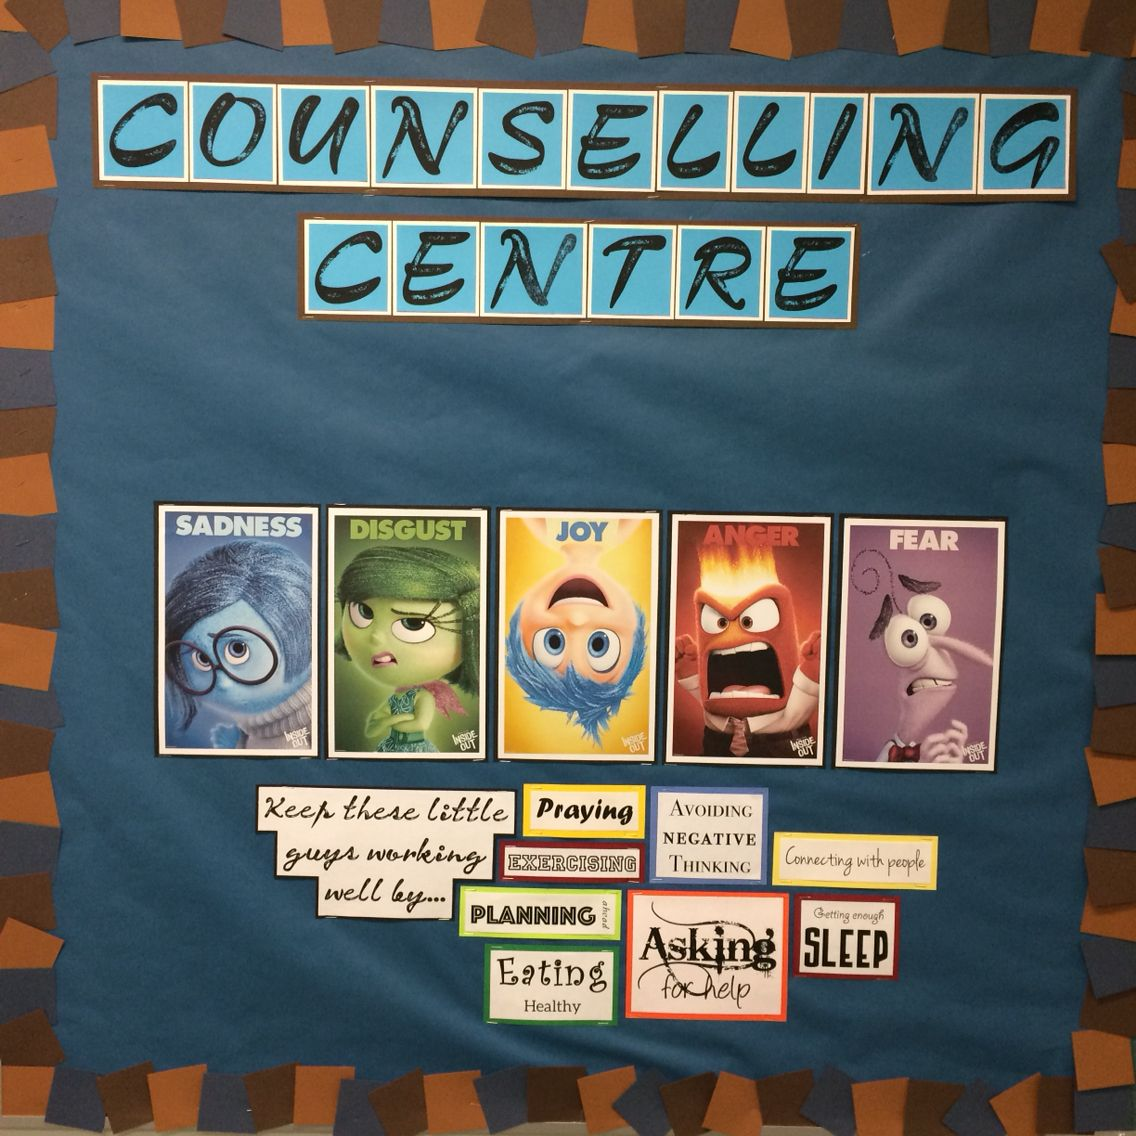 Emotions Bulletin Board Counselling Centre